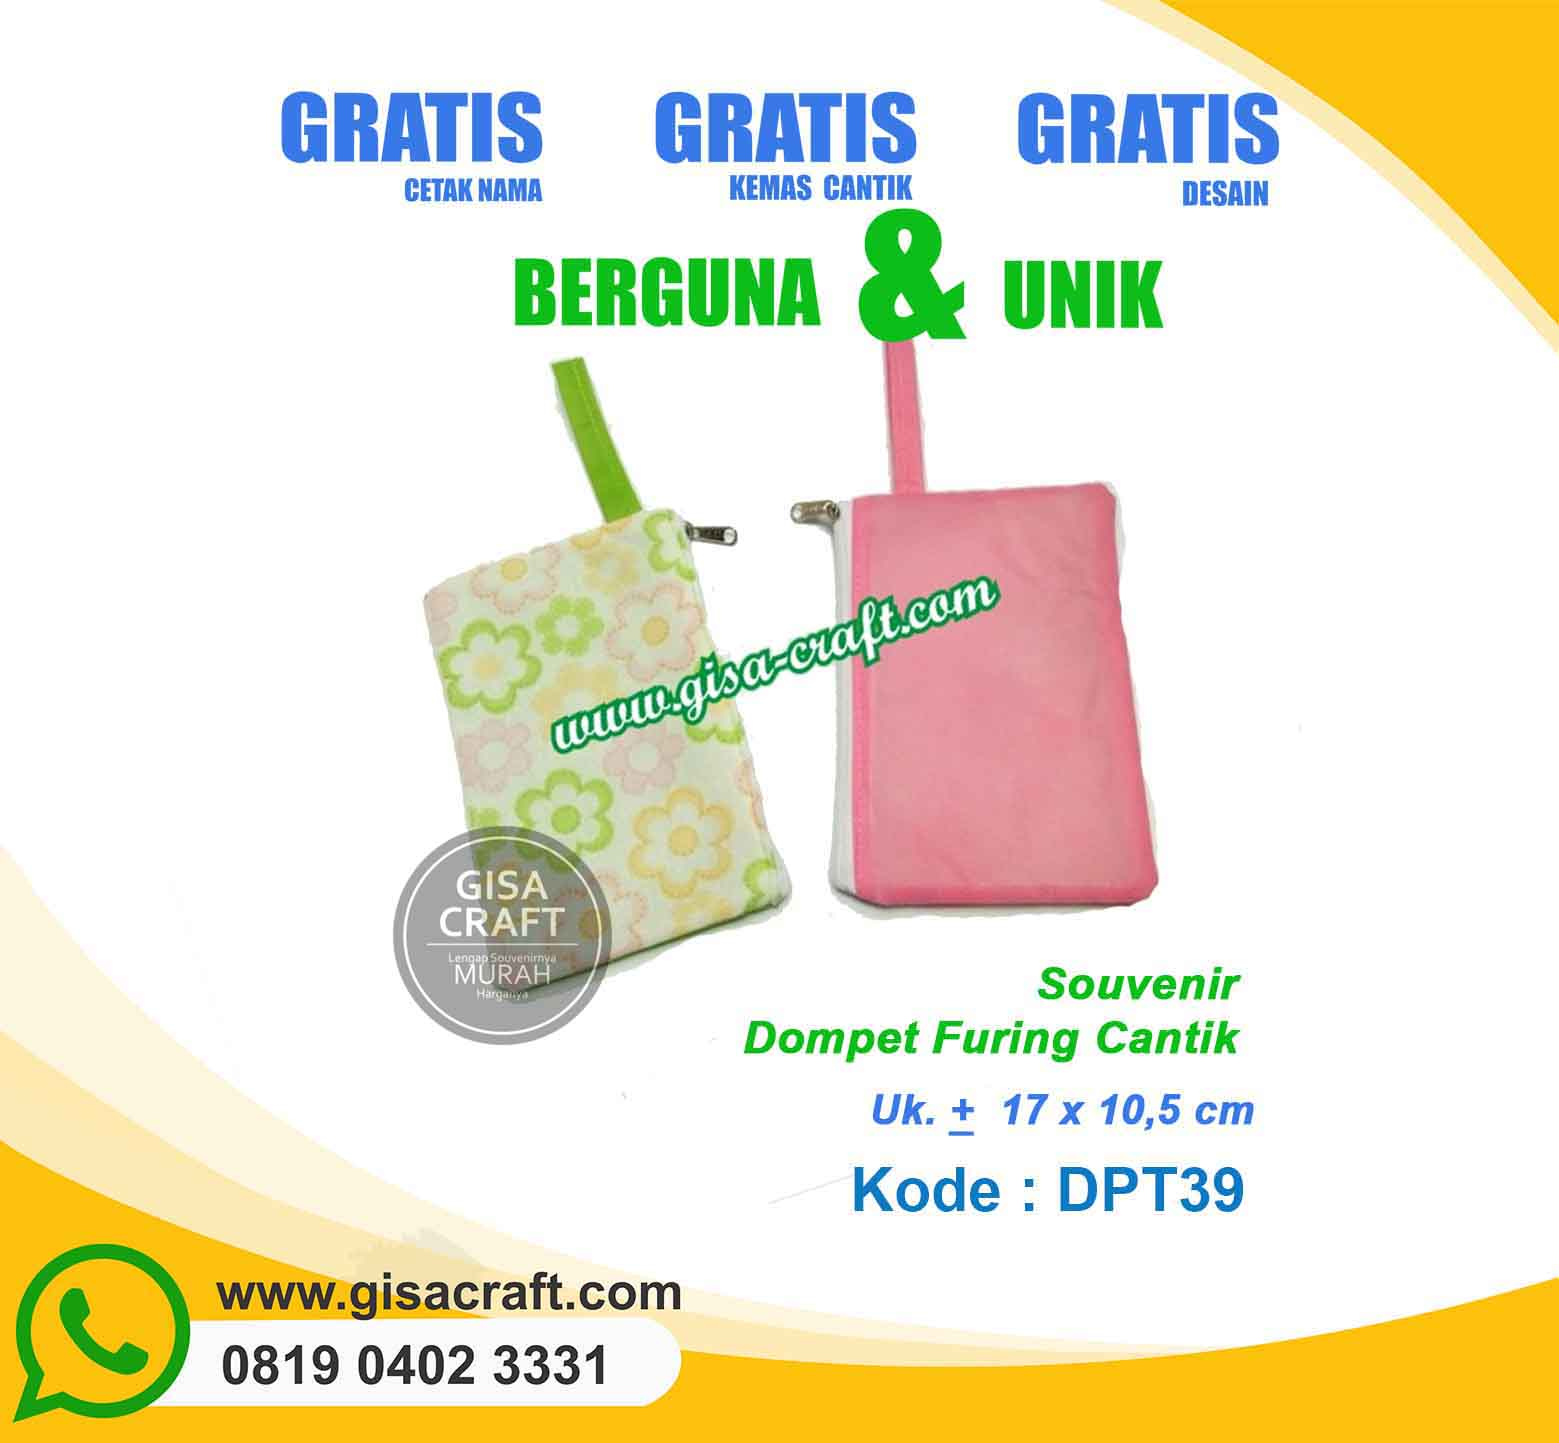 Dompet Furing